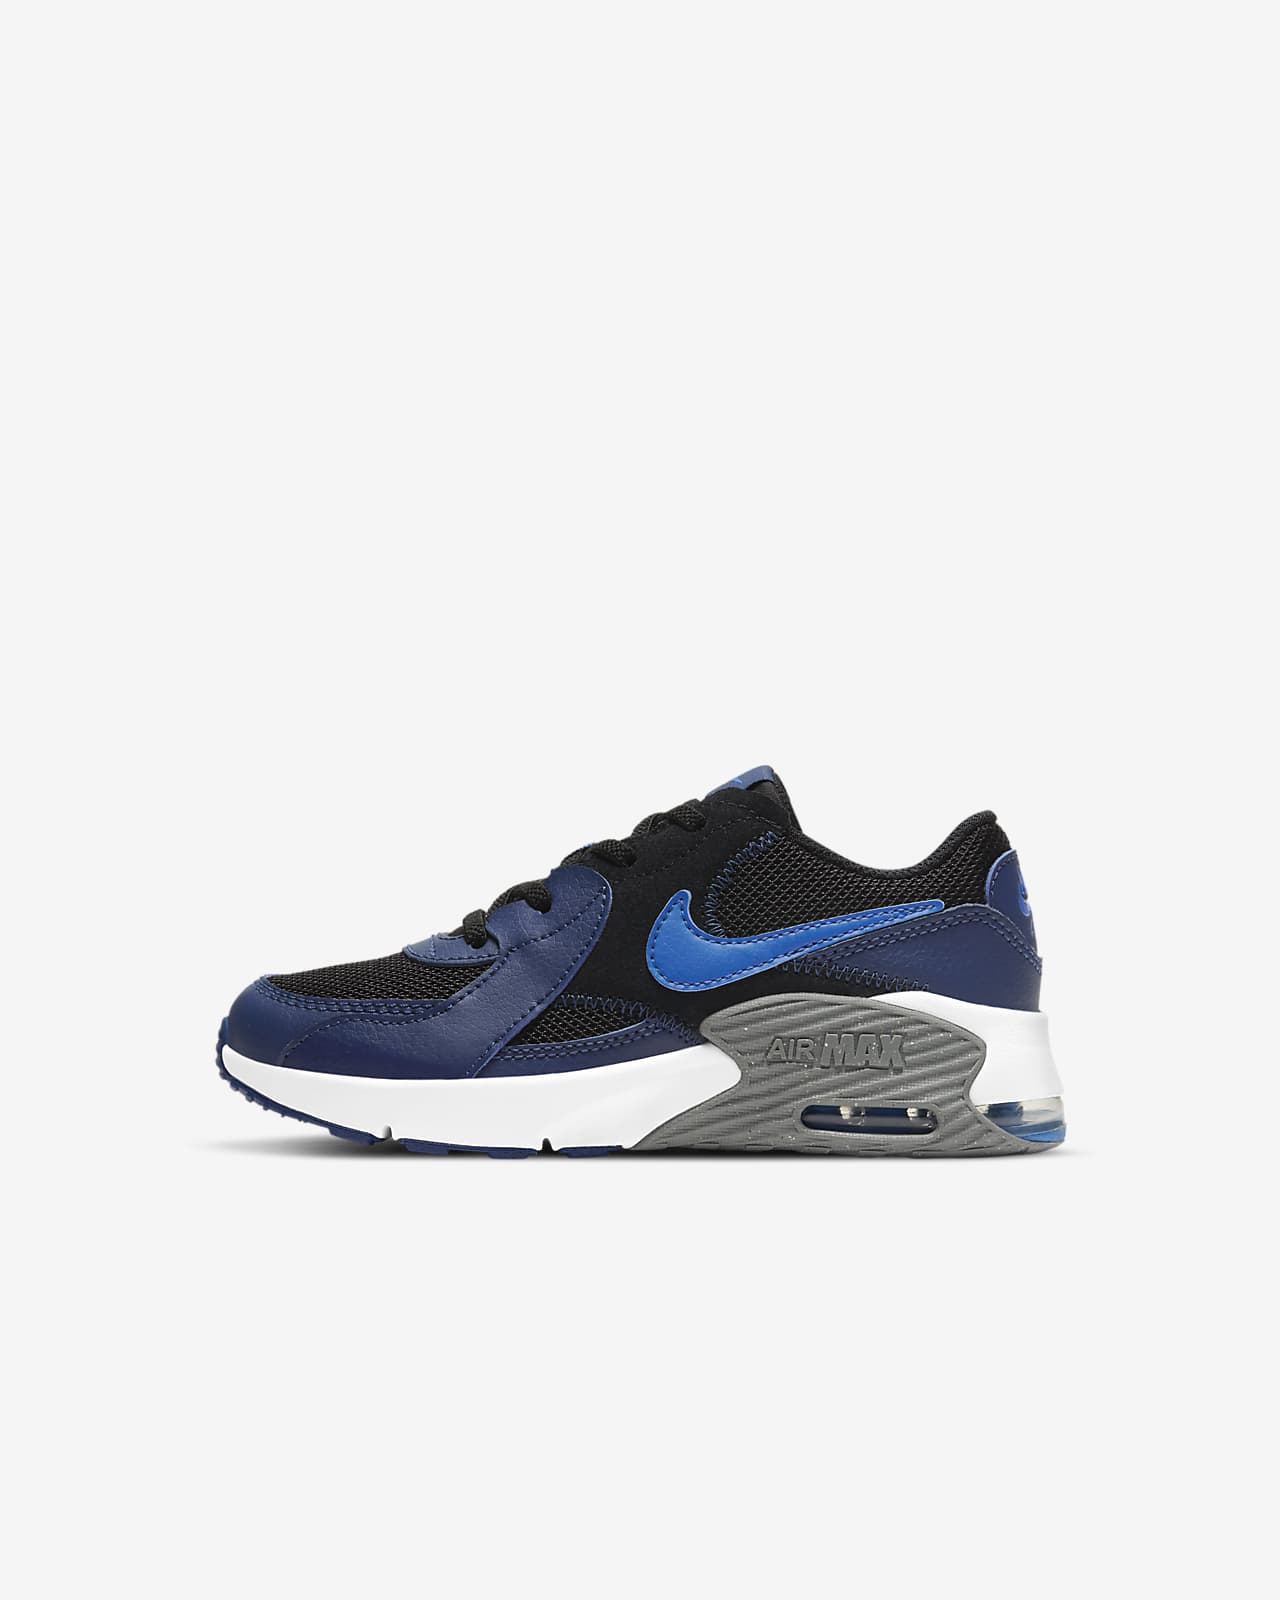 Chaussure Nike Air Max Excee pour Jeune enfant. Nike LU